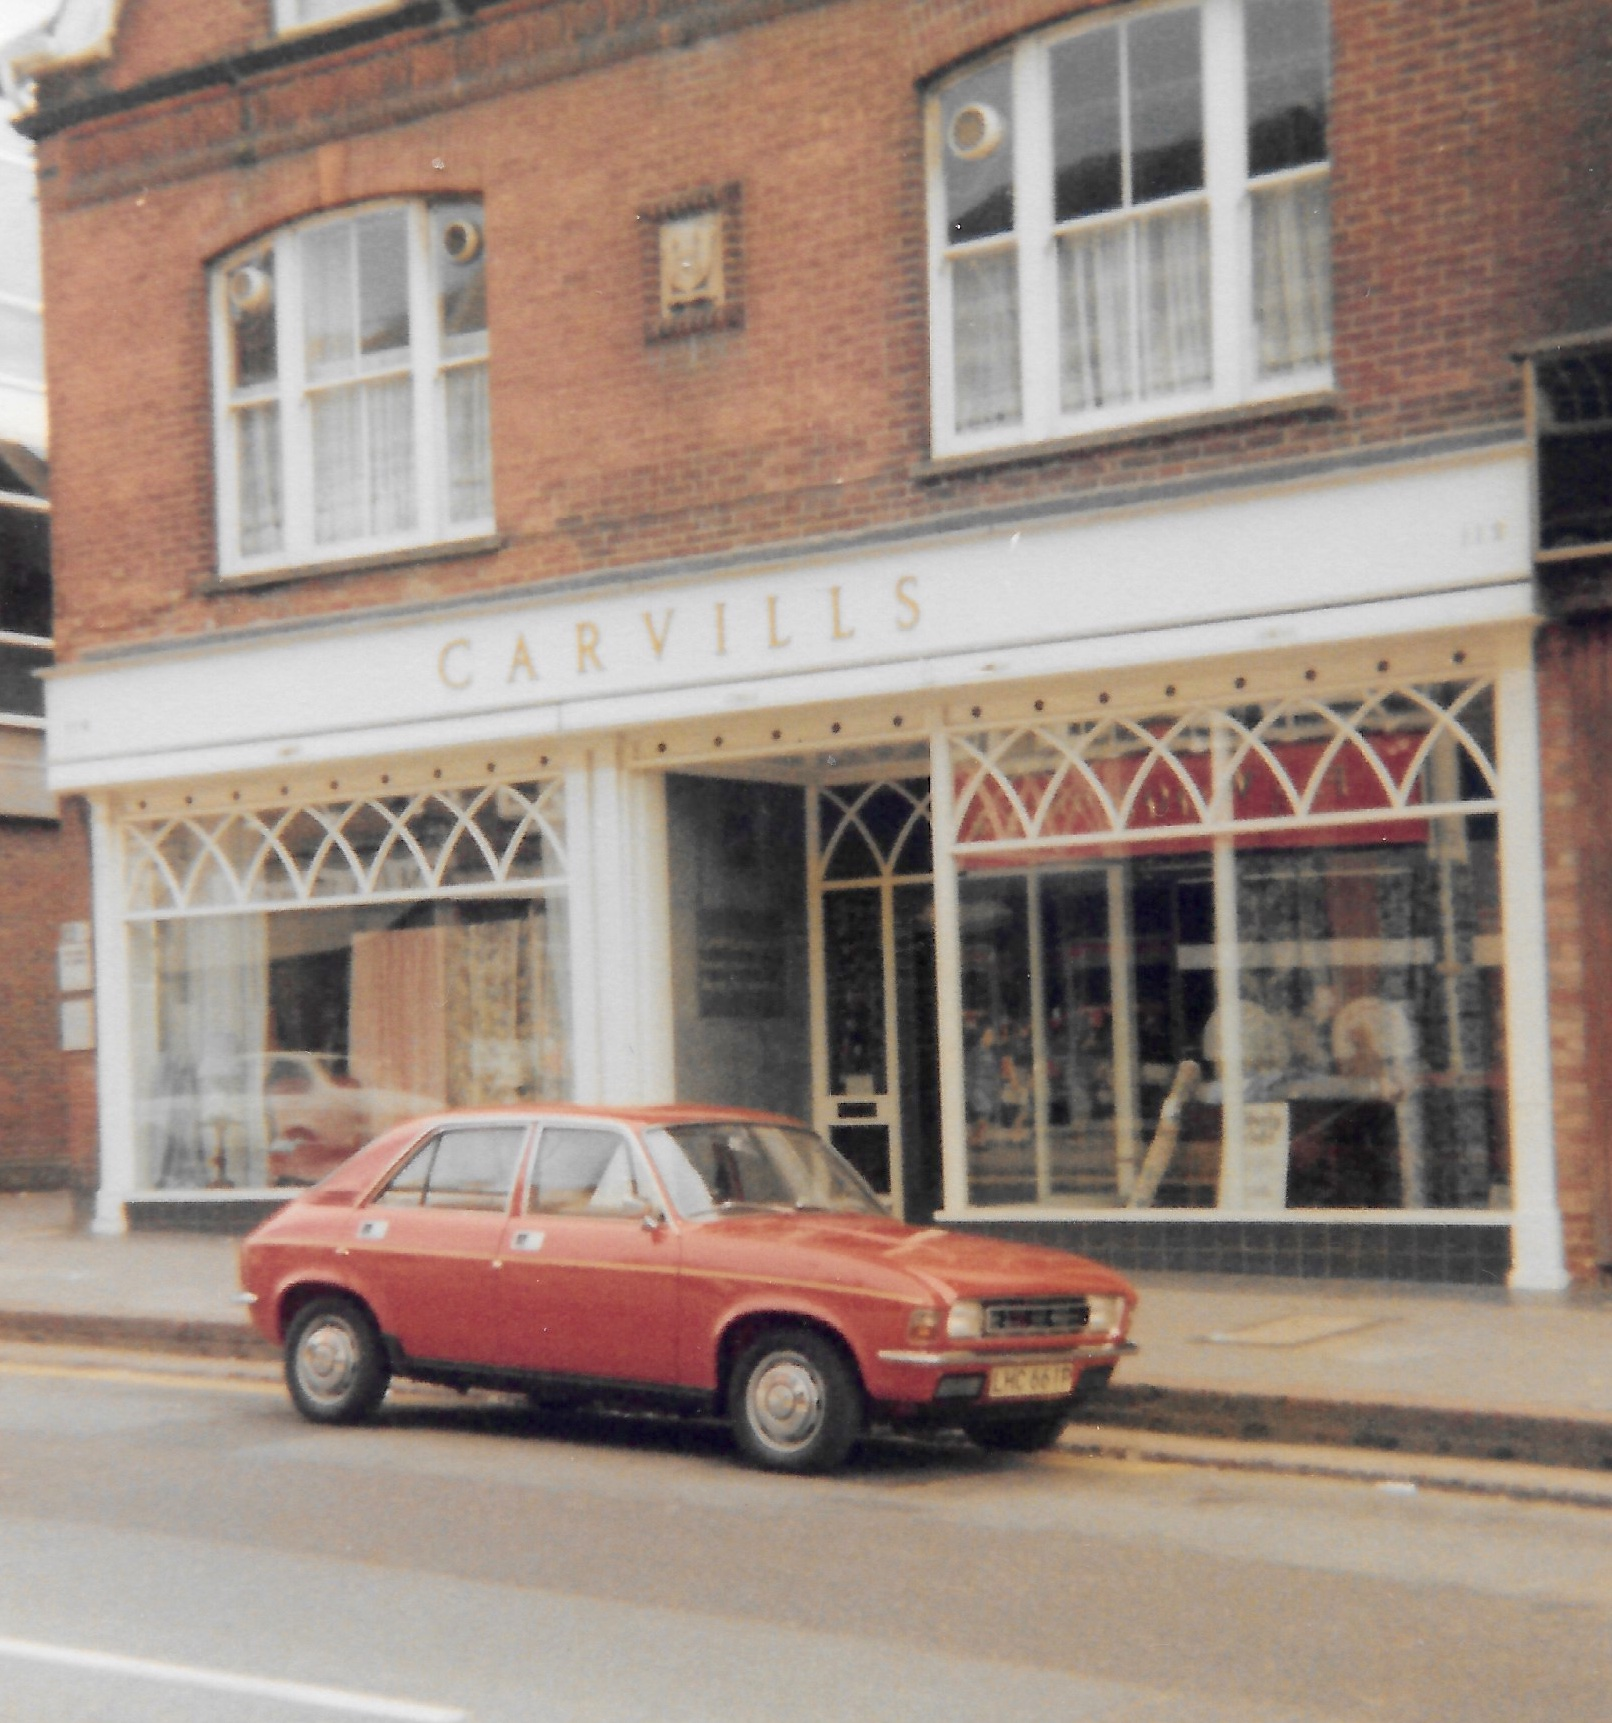 LHC661P Austin Allegro-carvills-1979-shop-window-added-1970